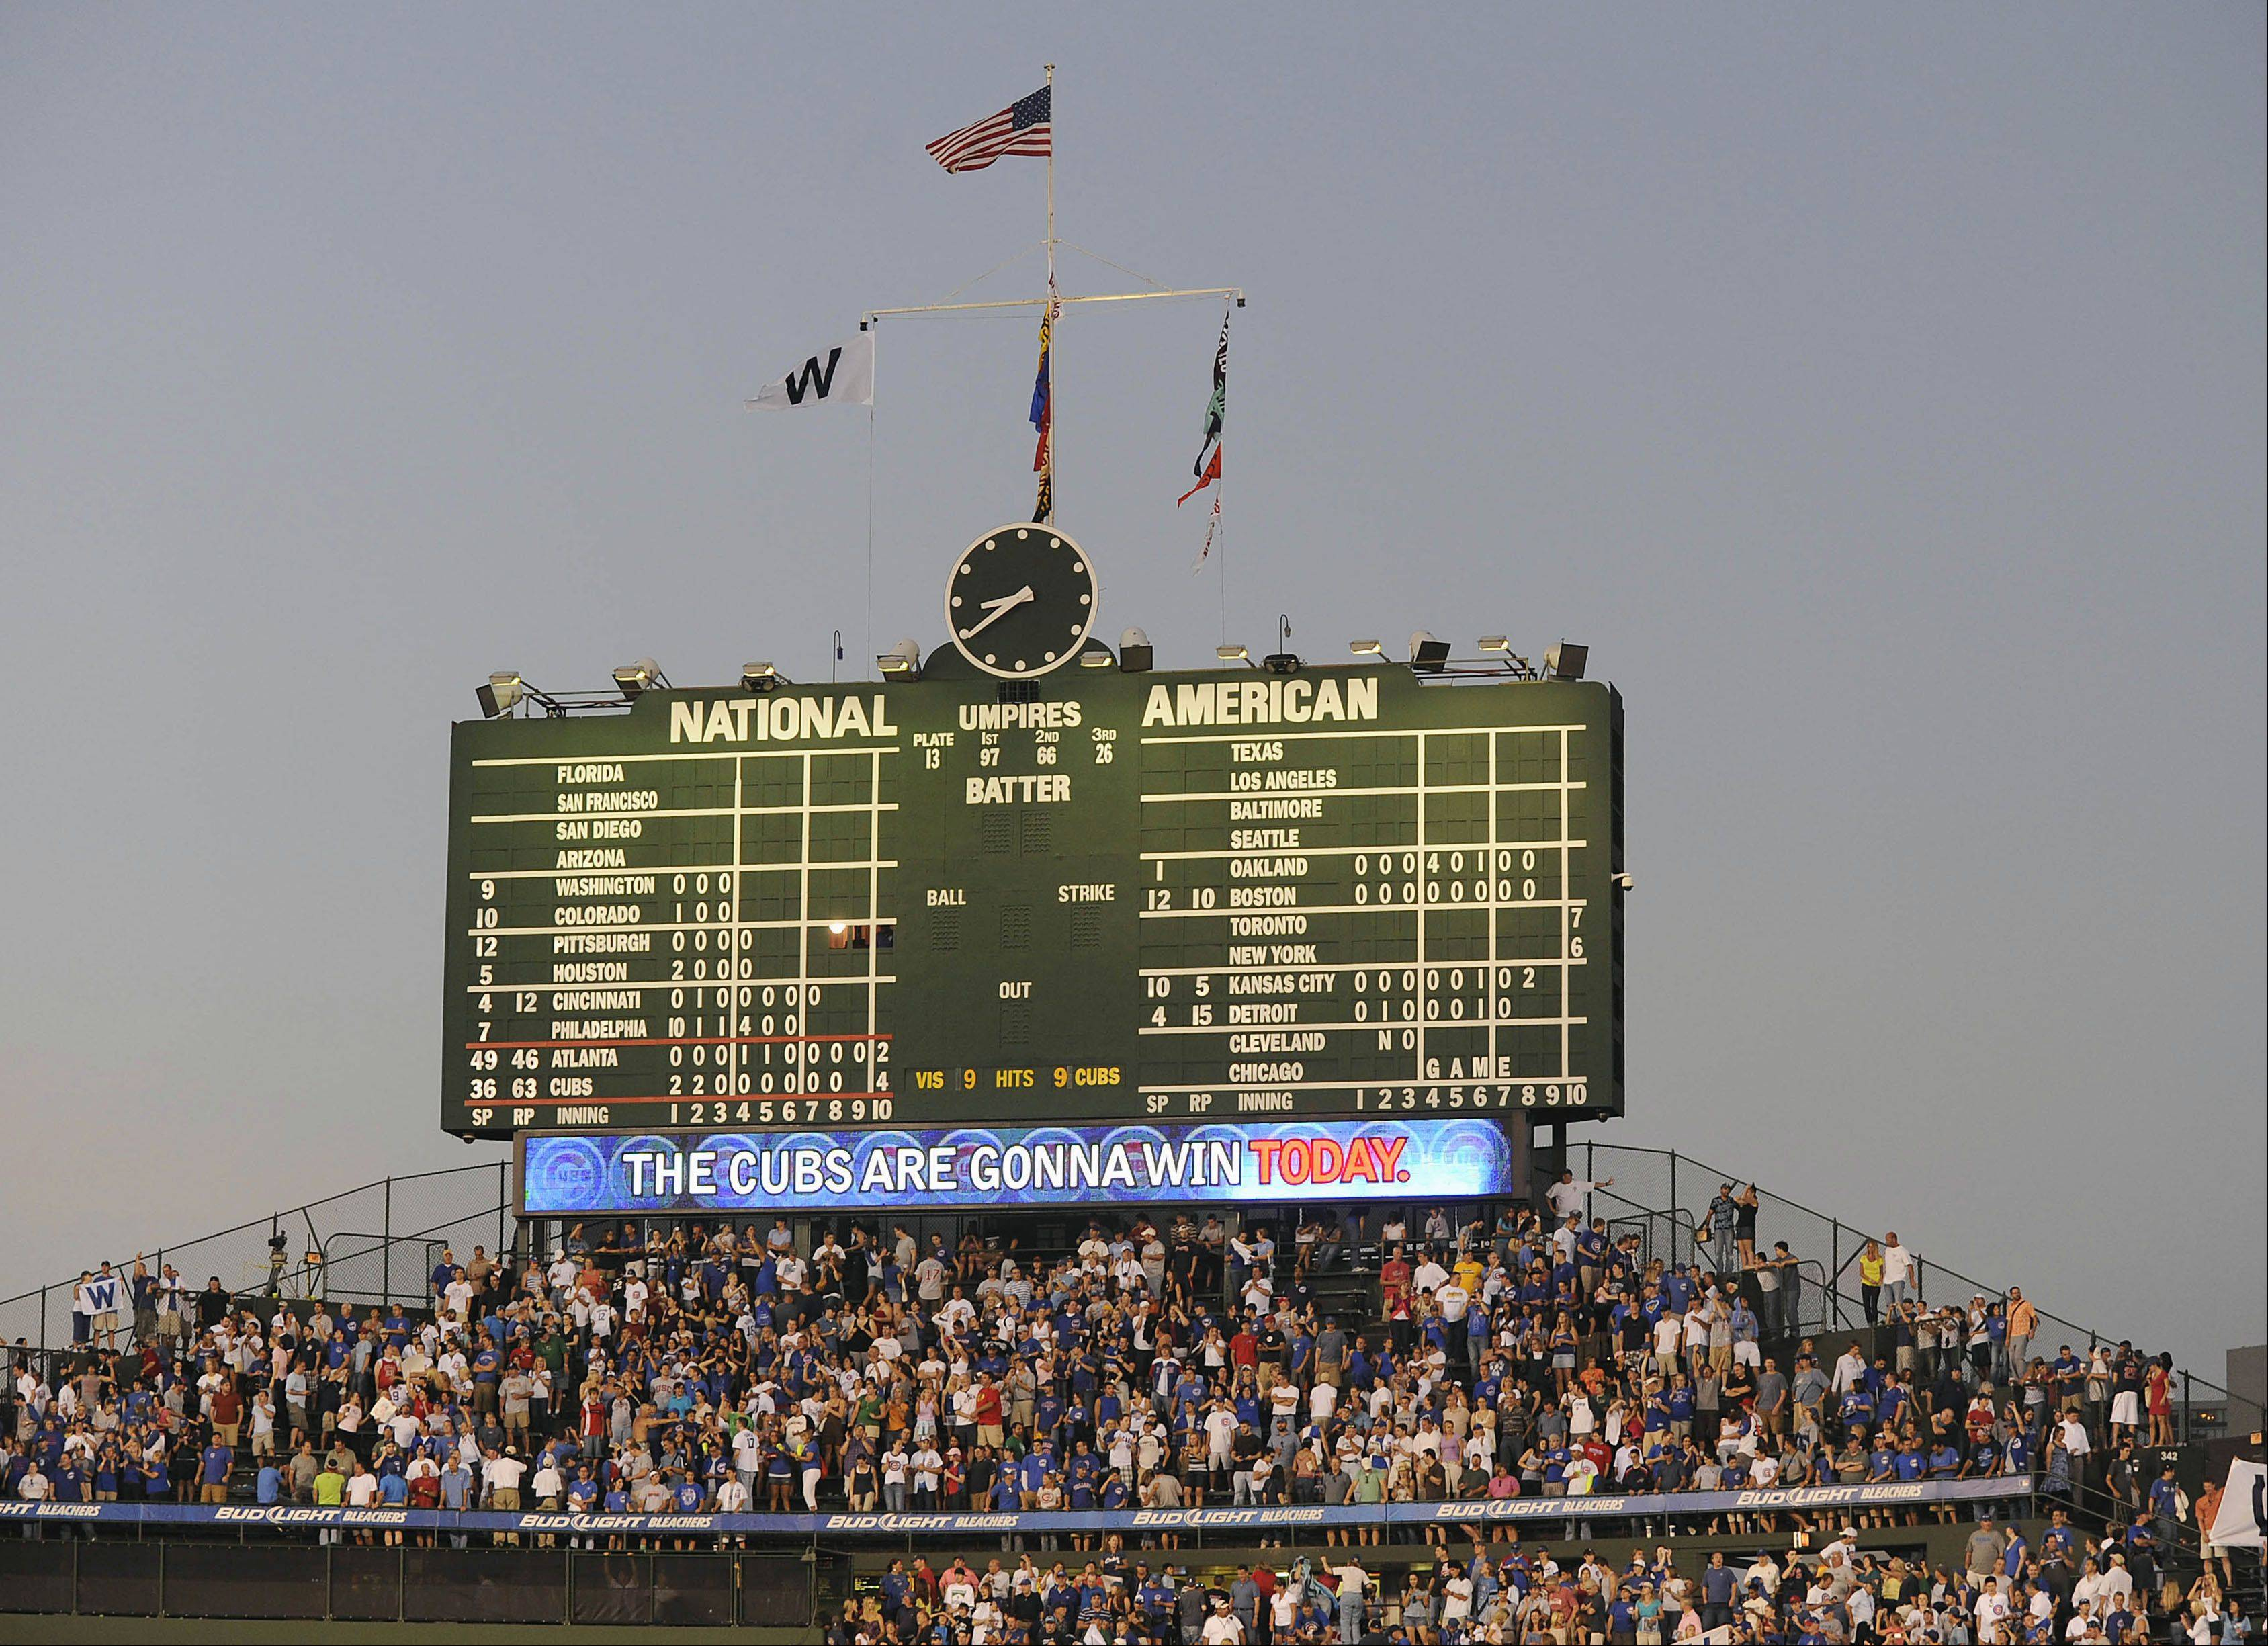 Did you see your first Major League game at iconic Wrigley Field?